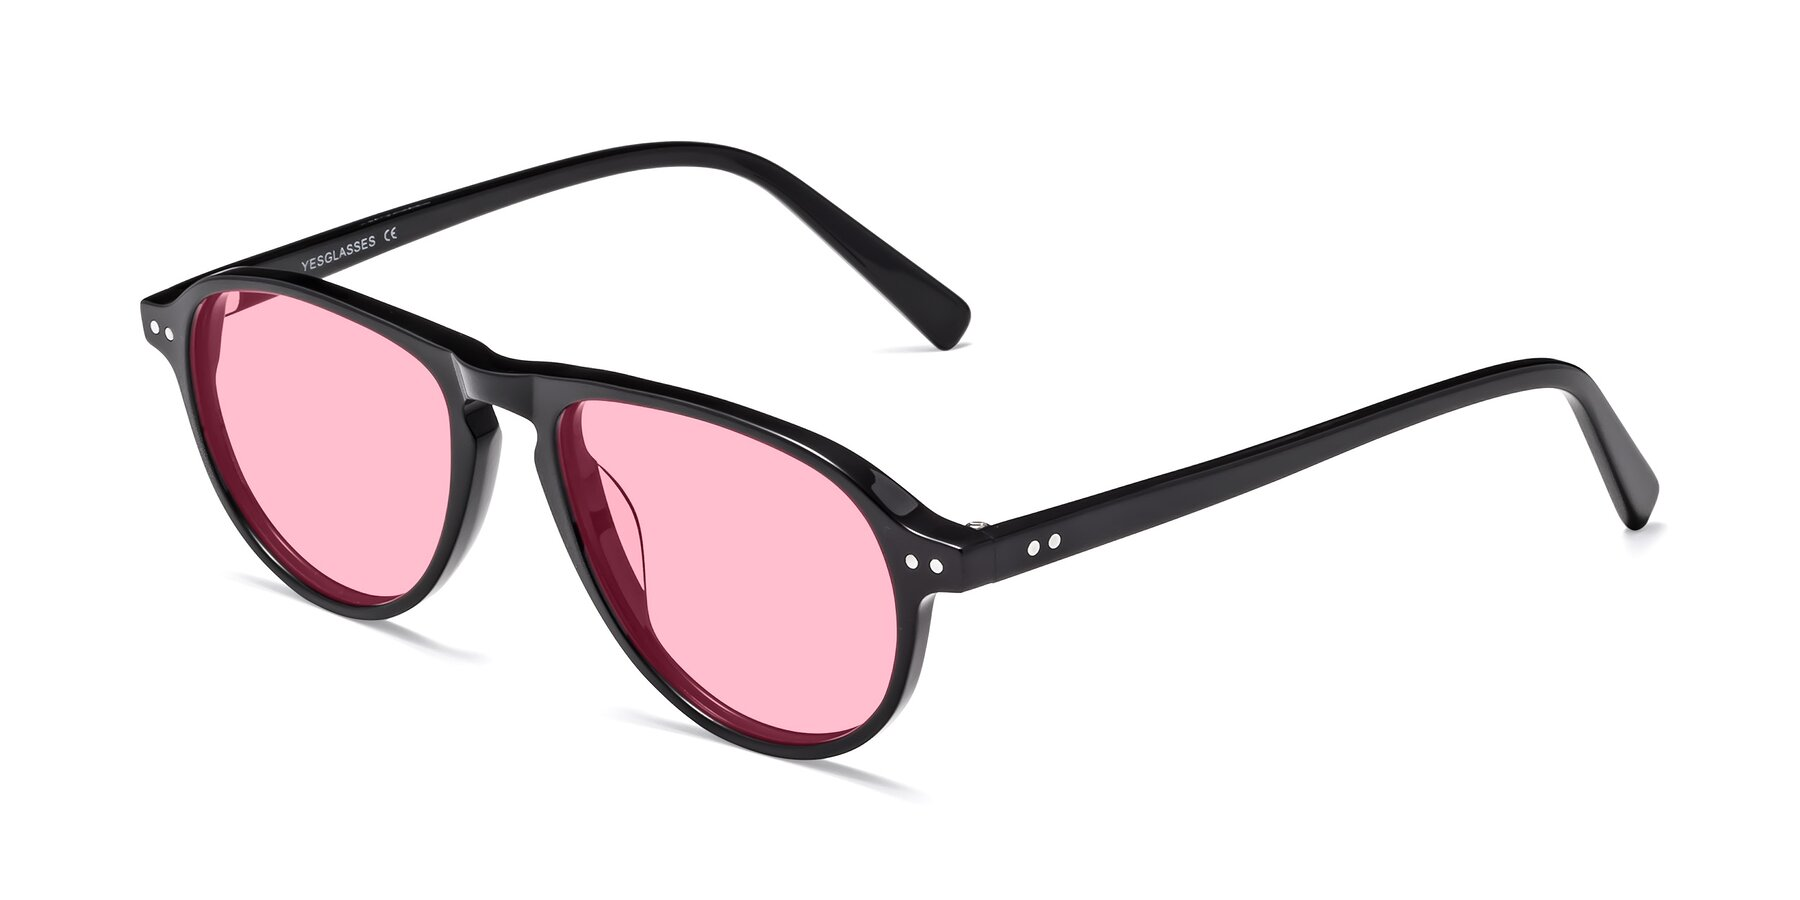 Angle of 17544 in Black with Medium Pink Tinted Lenses